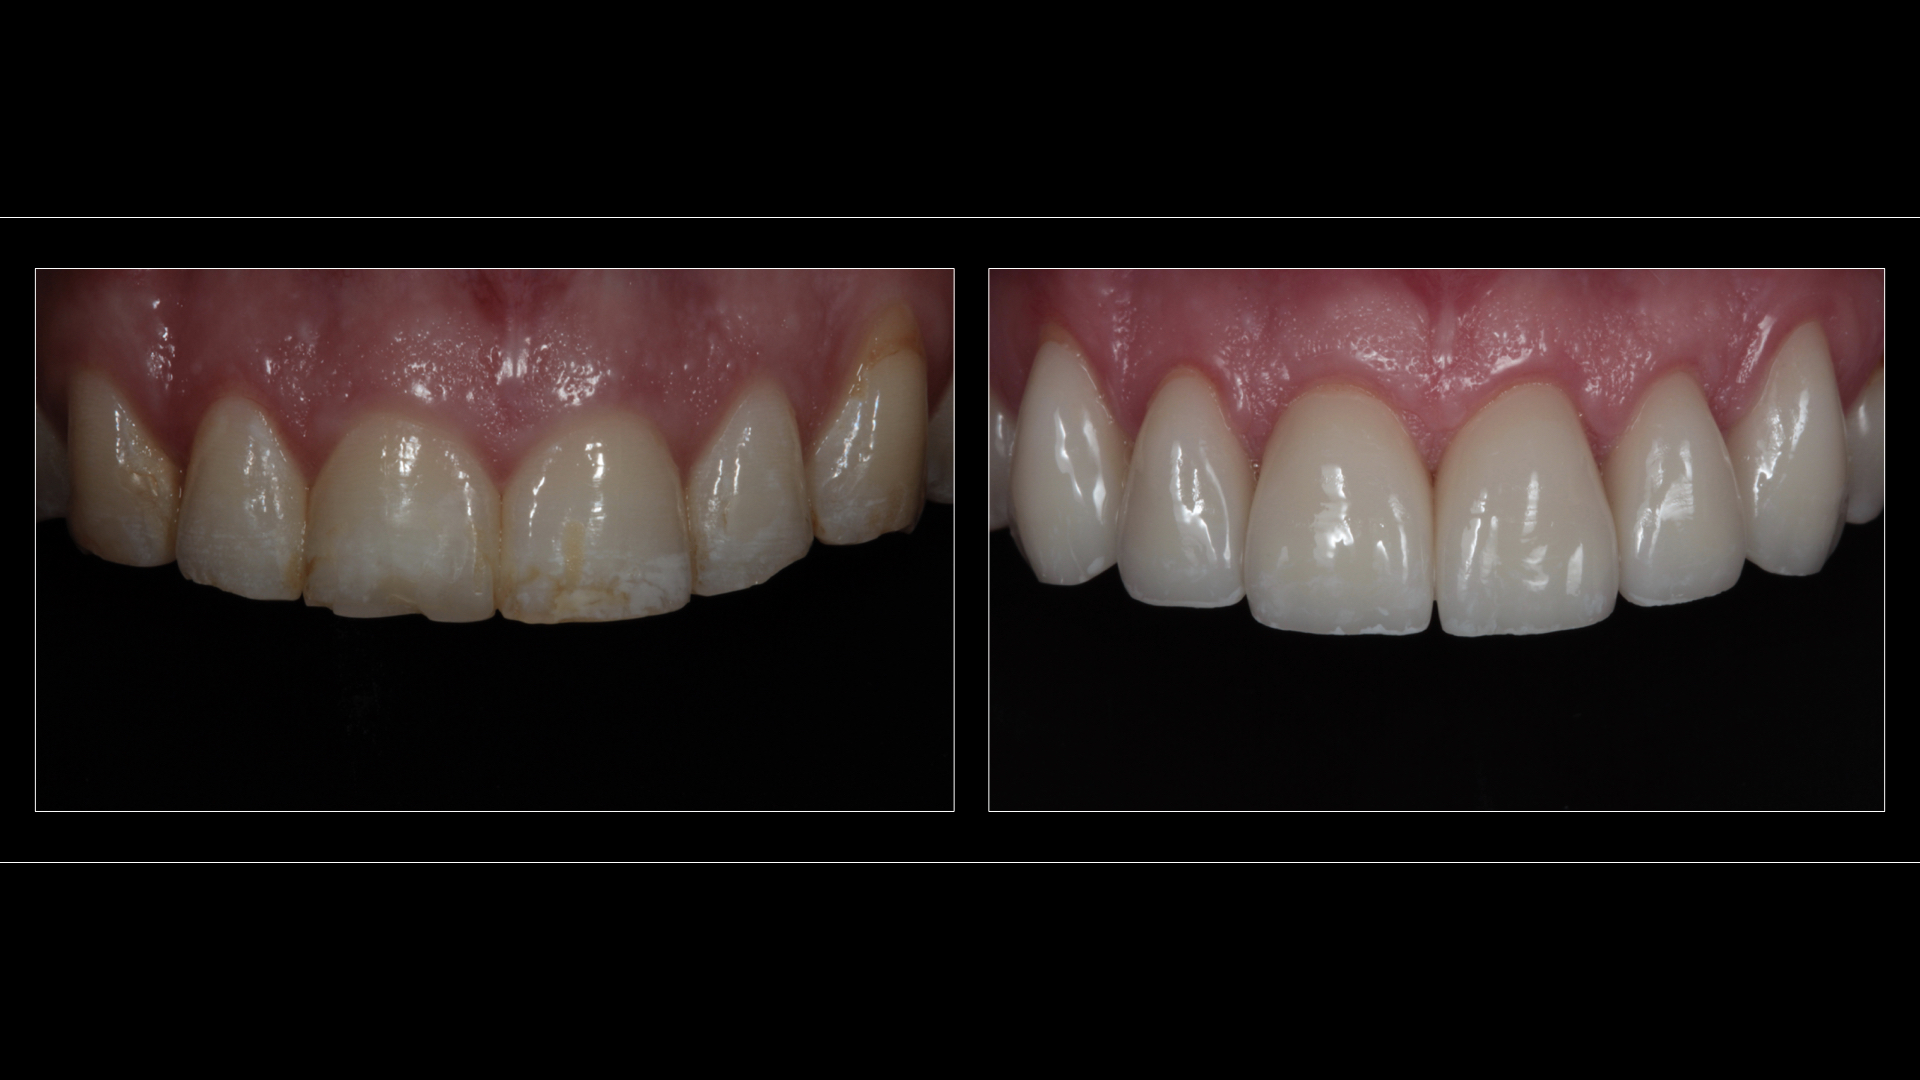 All-Ceramic Crowns (6 Teeth: 2 Upper Canines / 4 Incisors)